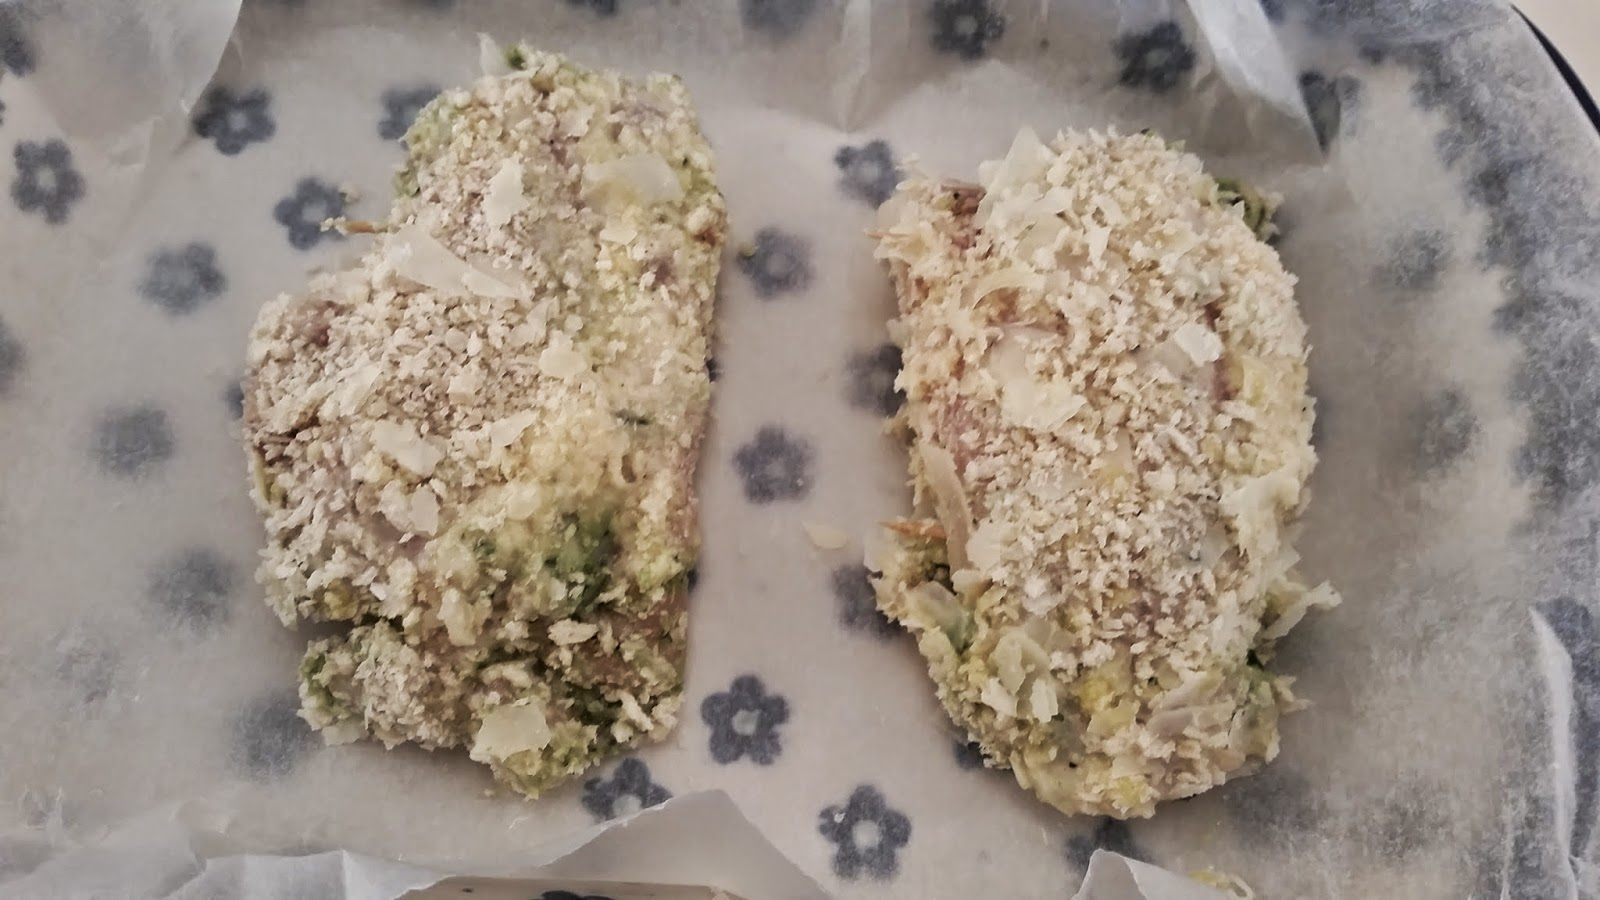 Pesto Stuffed Chicken Thighs. Coated in panko and parmesan. Ready to bake.